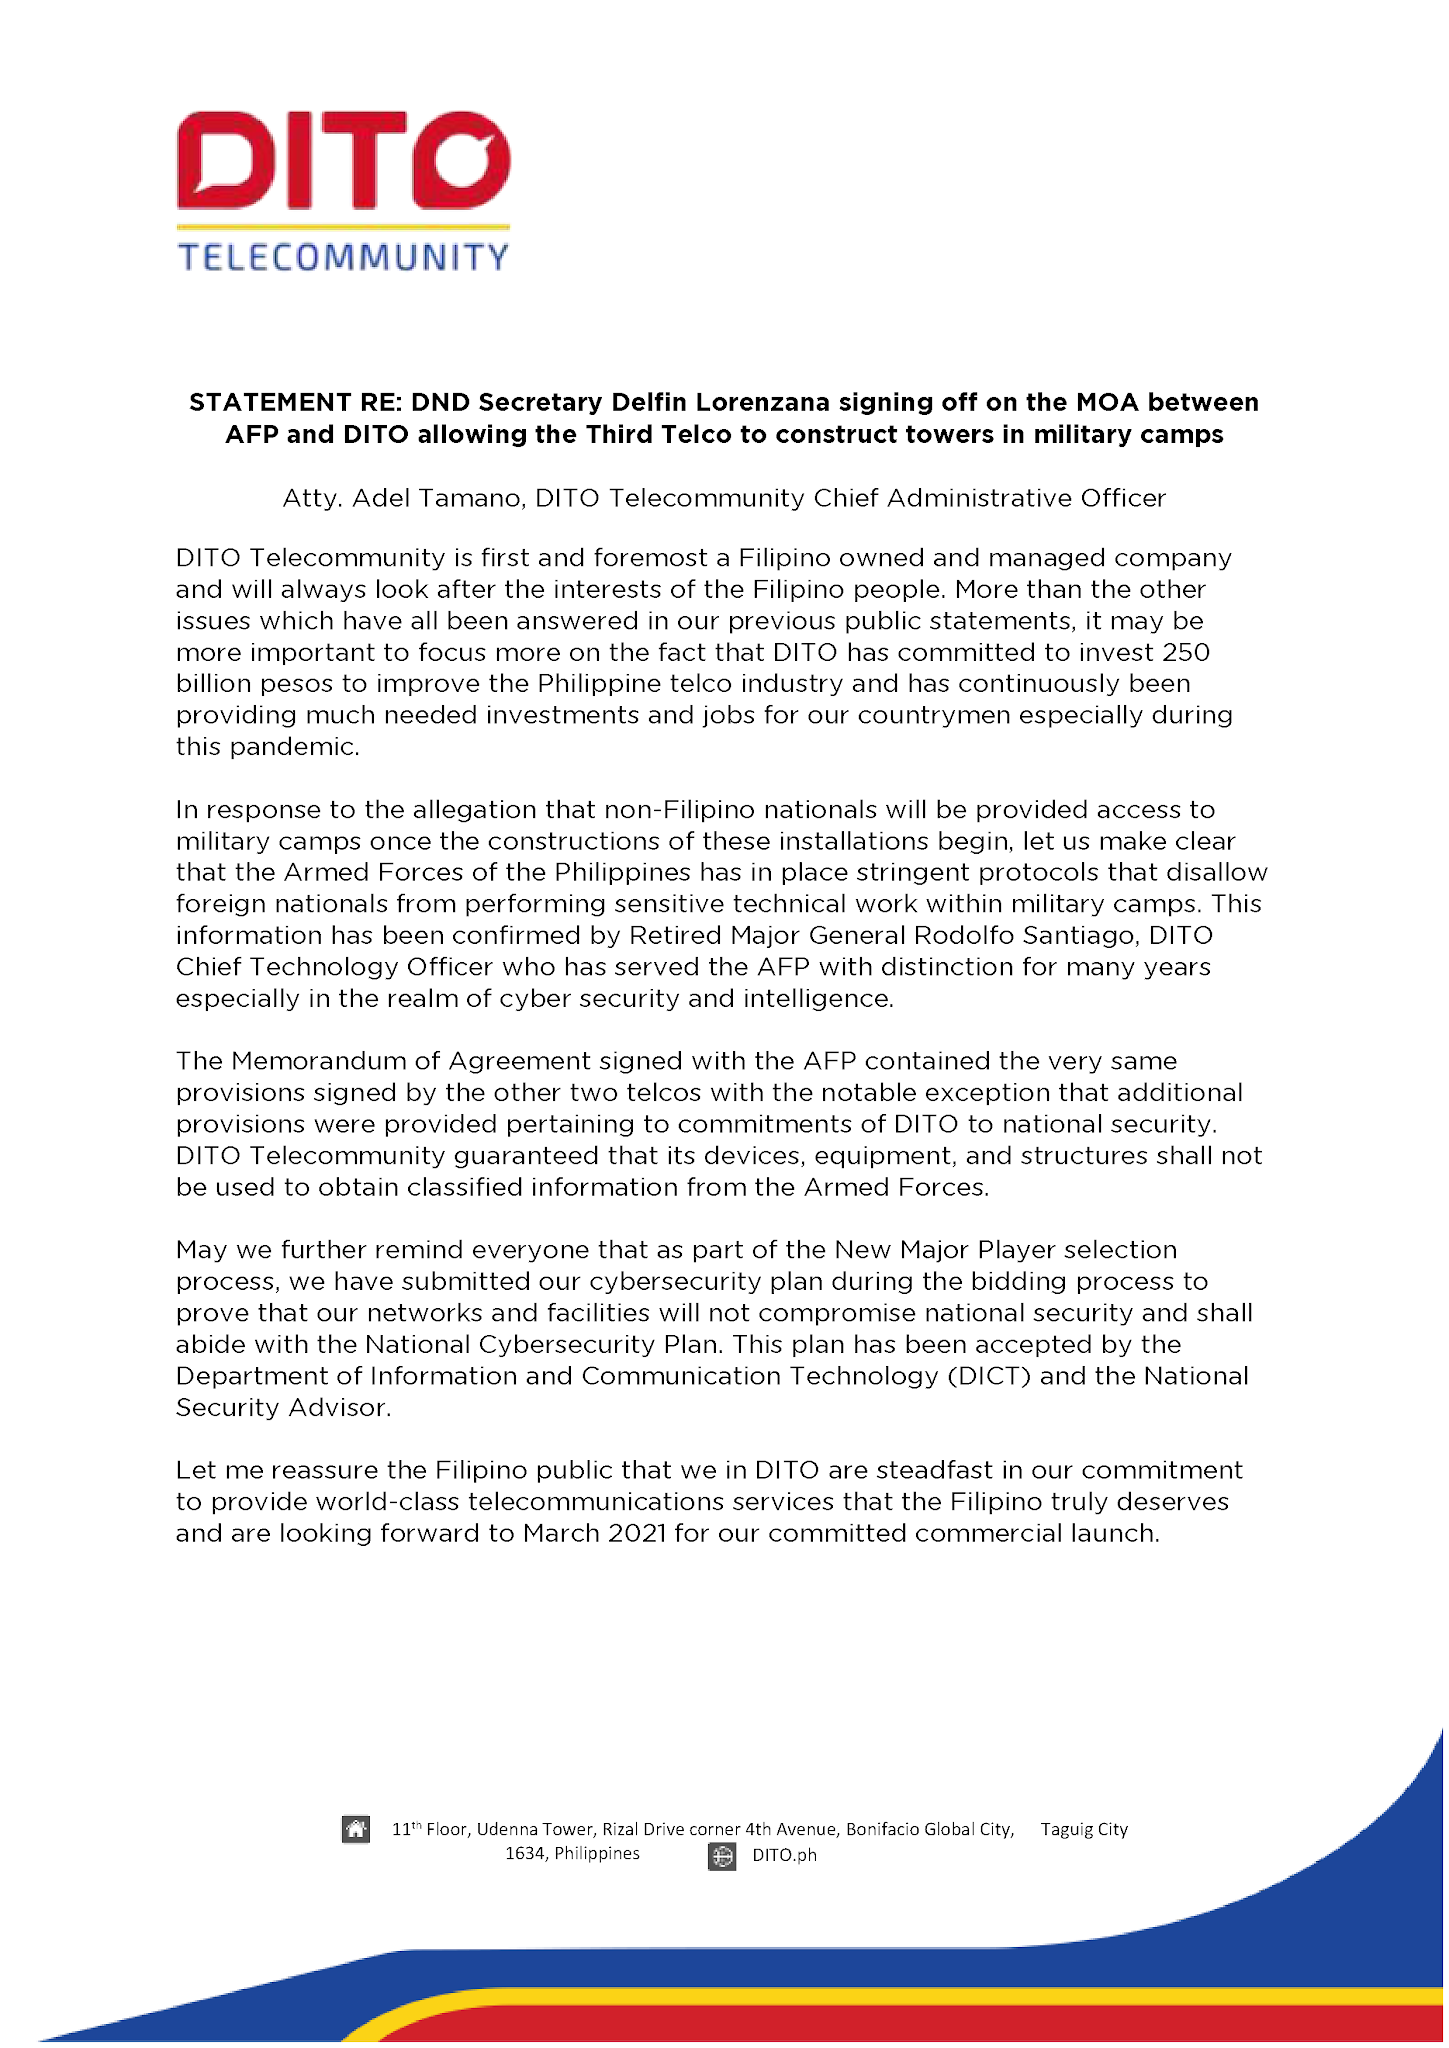 Official Statement on the MOA between AFP and DITO allowing the Third Telco to construct towers in military camps